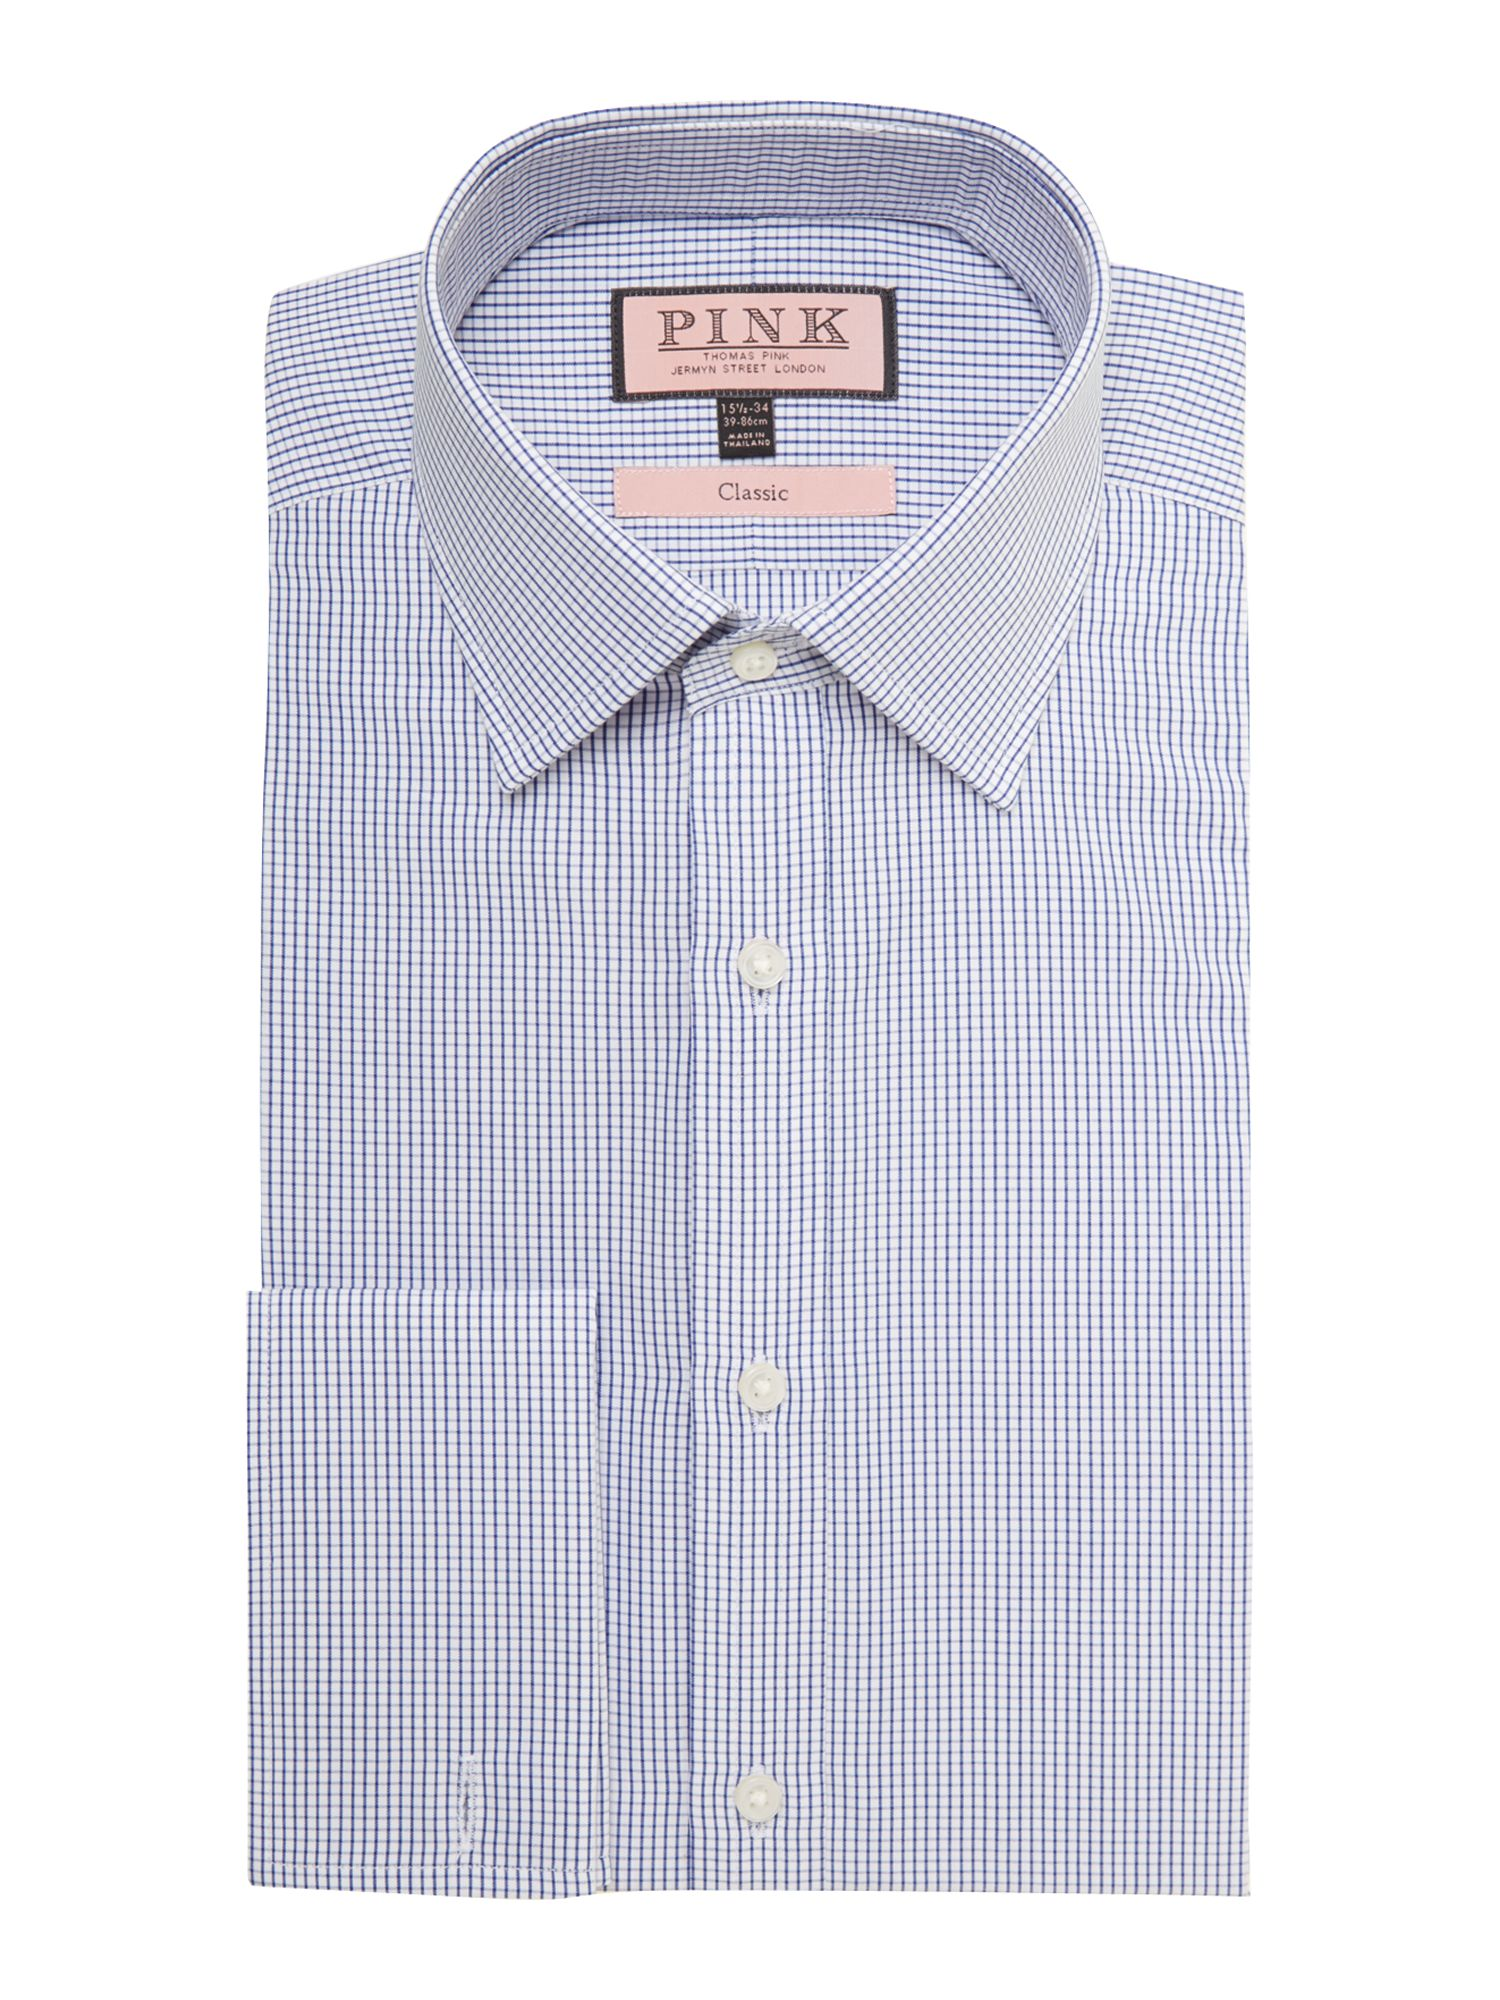 Regular fit vienna check shirt